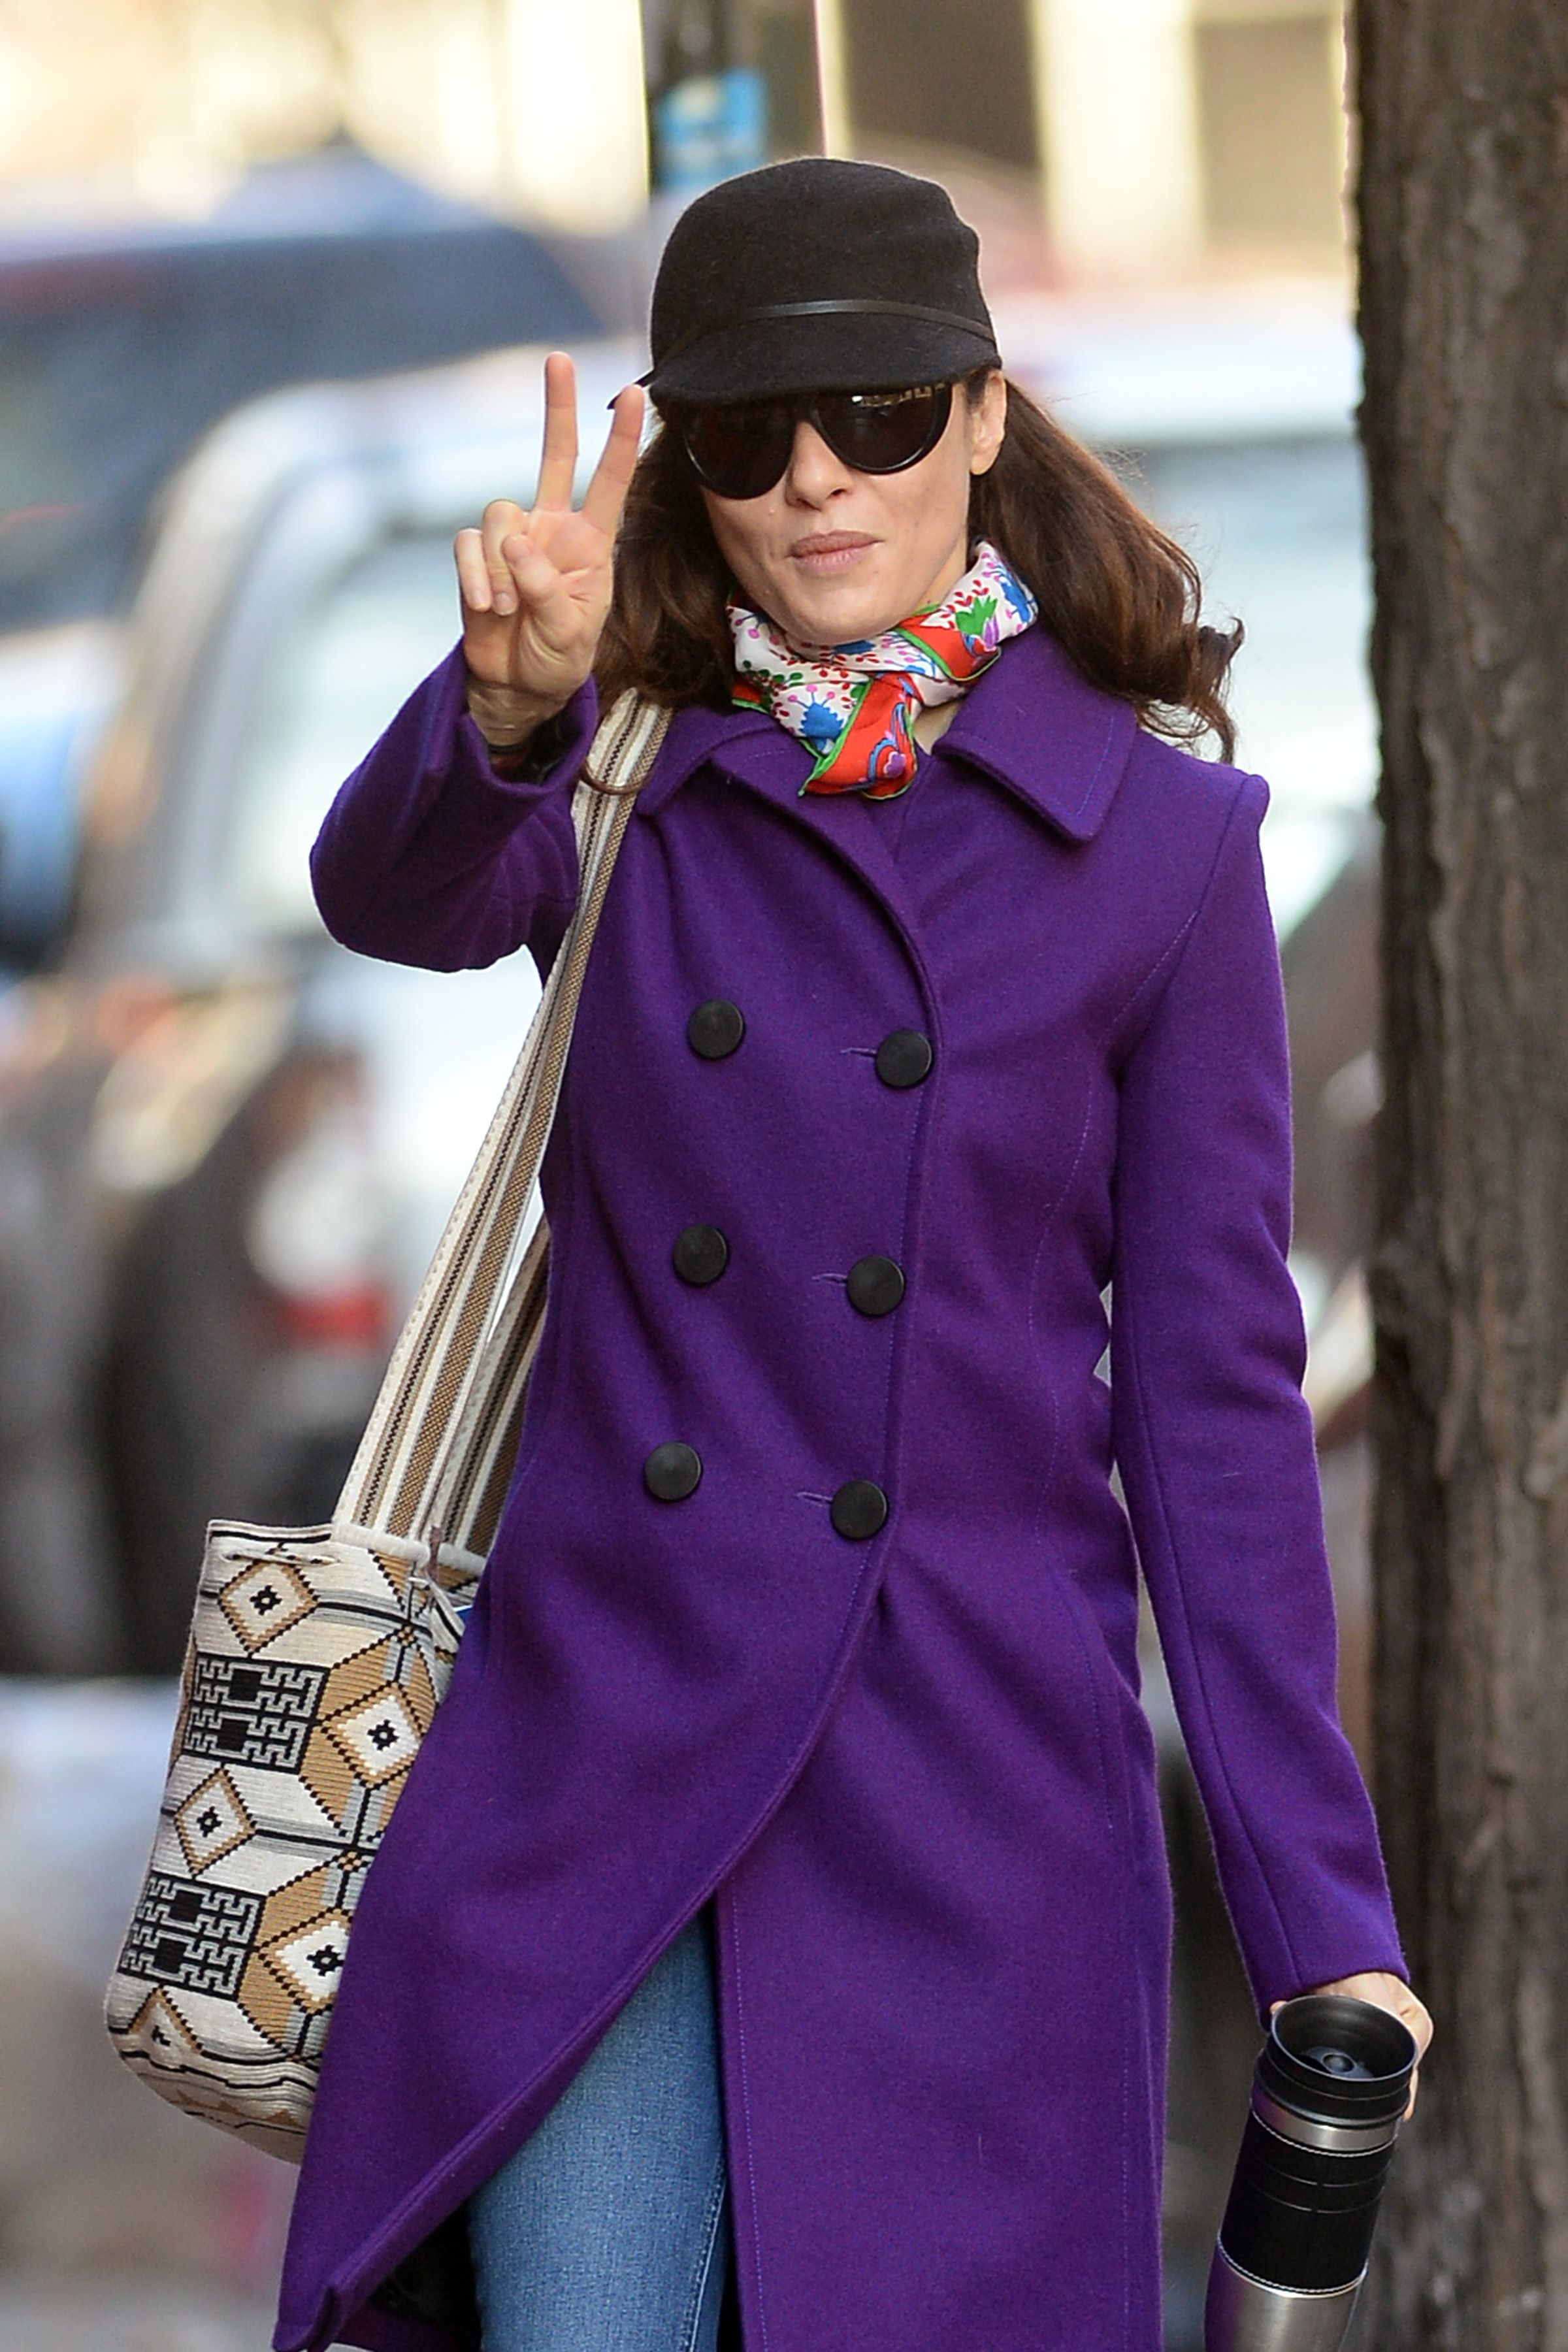 Rachel Weisz Gives The Peace Sign In A Purple Coat